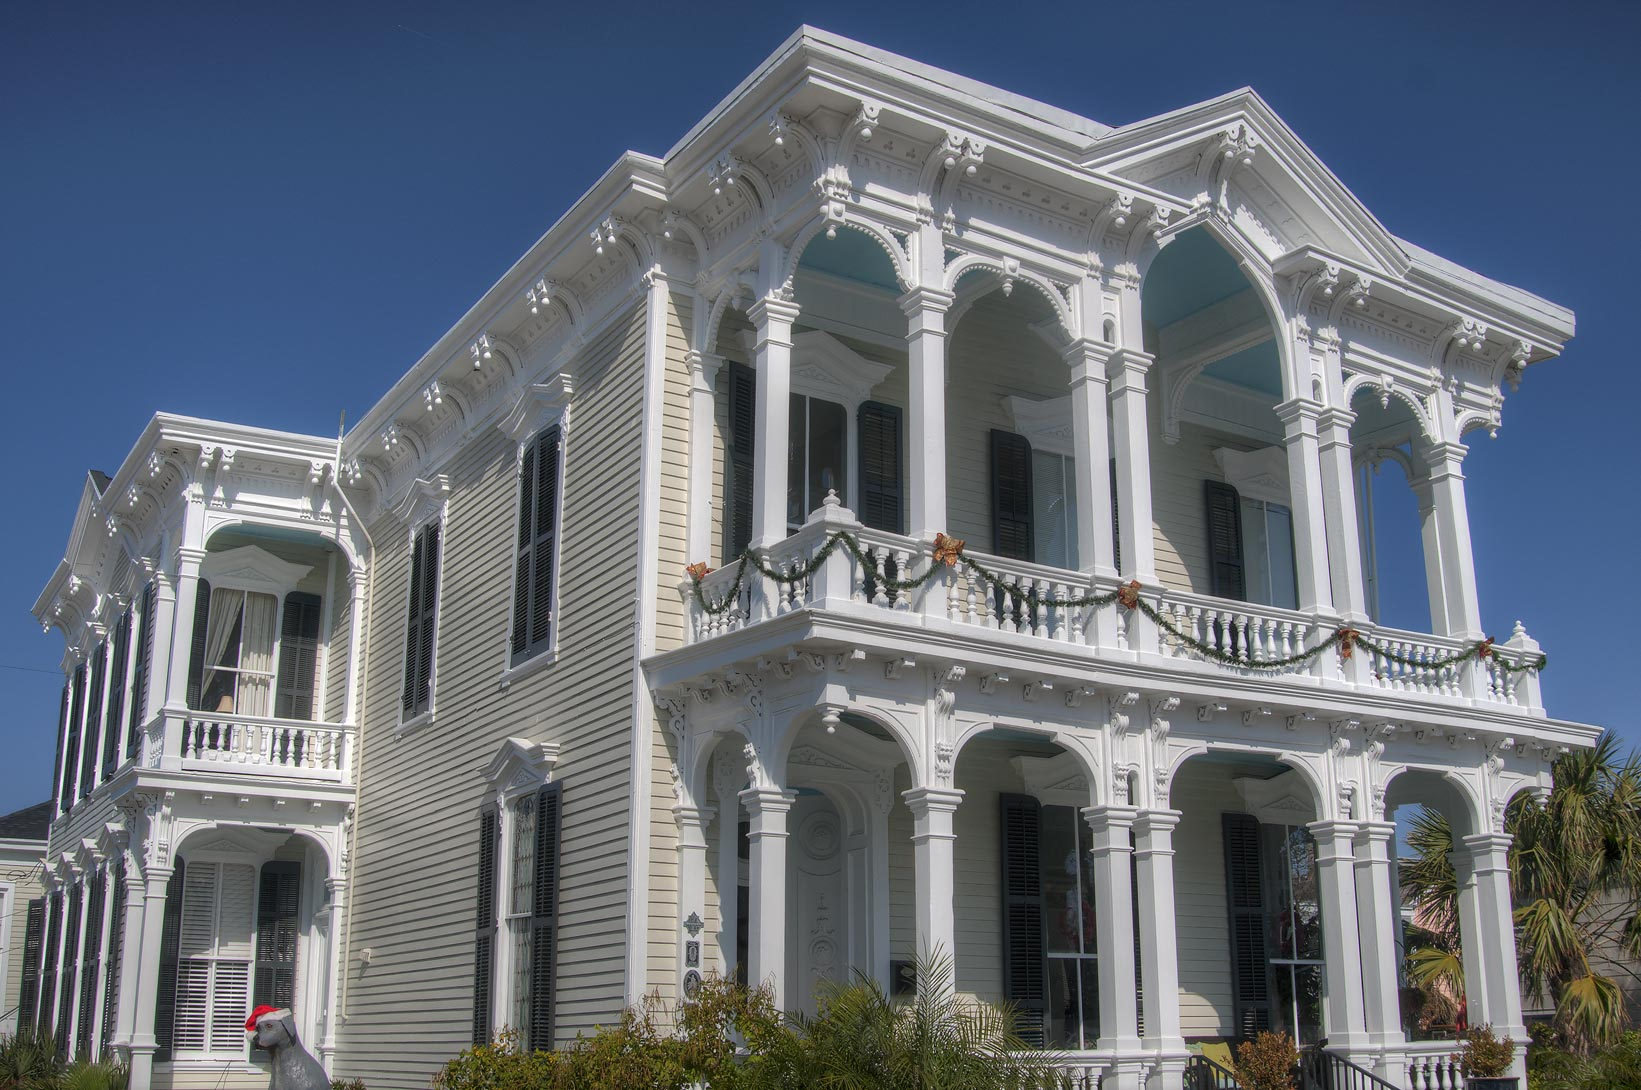 Lemuel C. Burr house (1876) at 1228 Sealy St., a...Historic District. Galveston, Texas